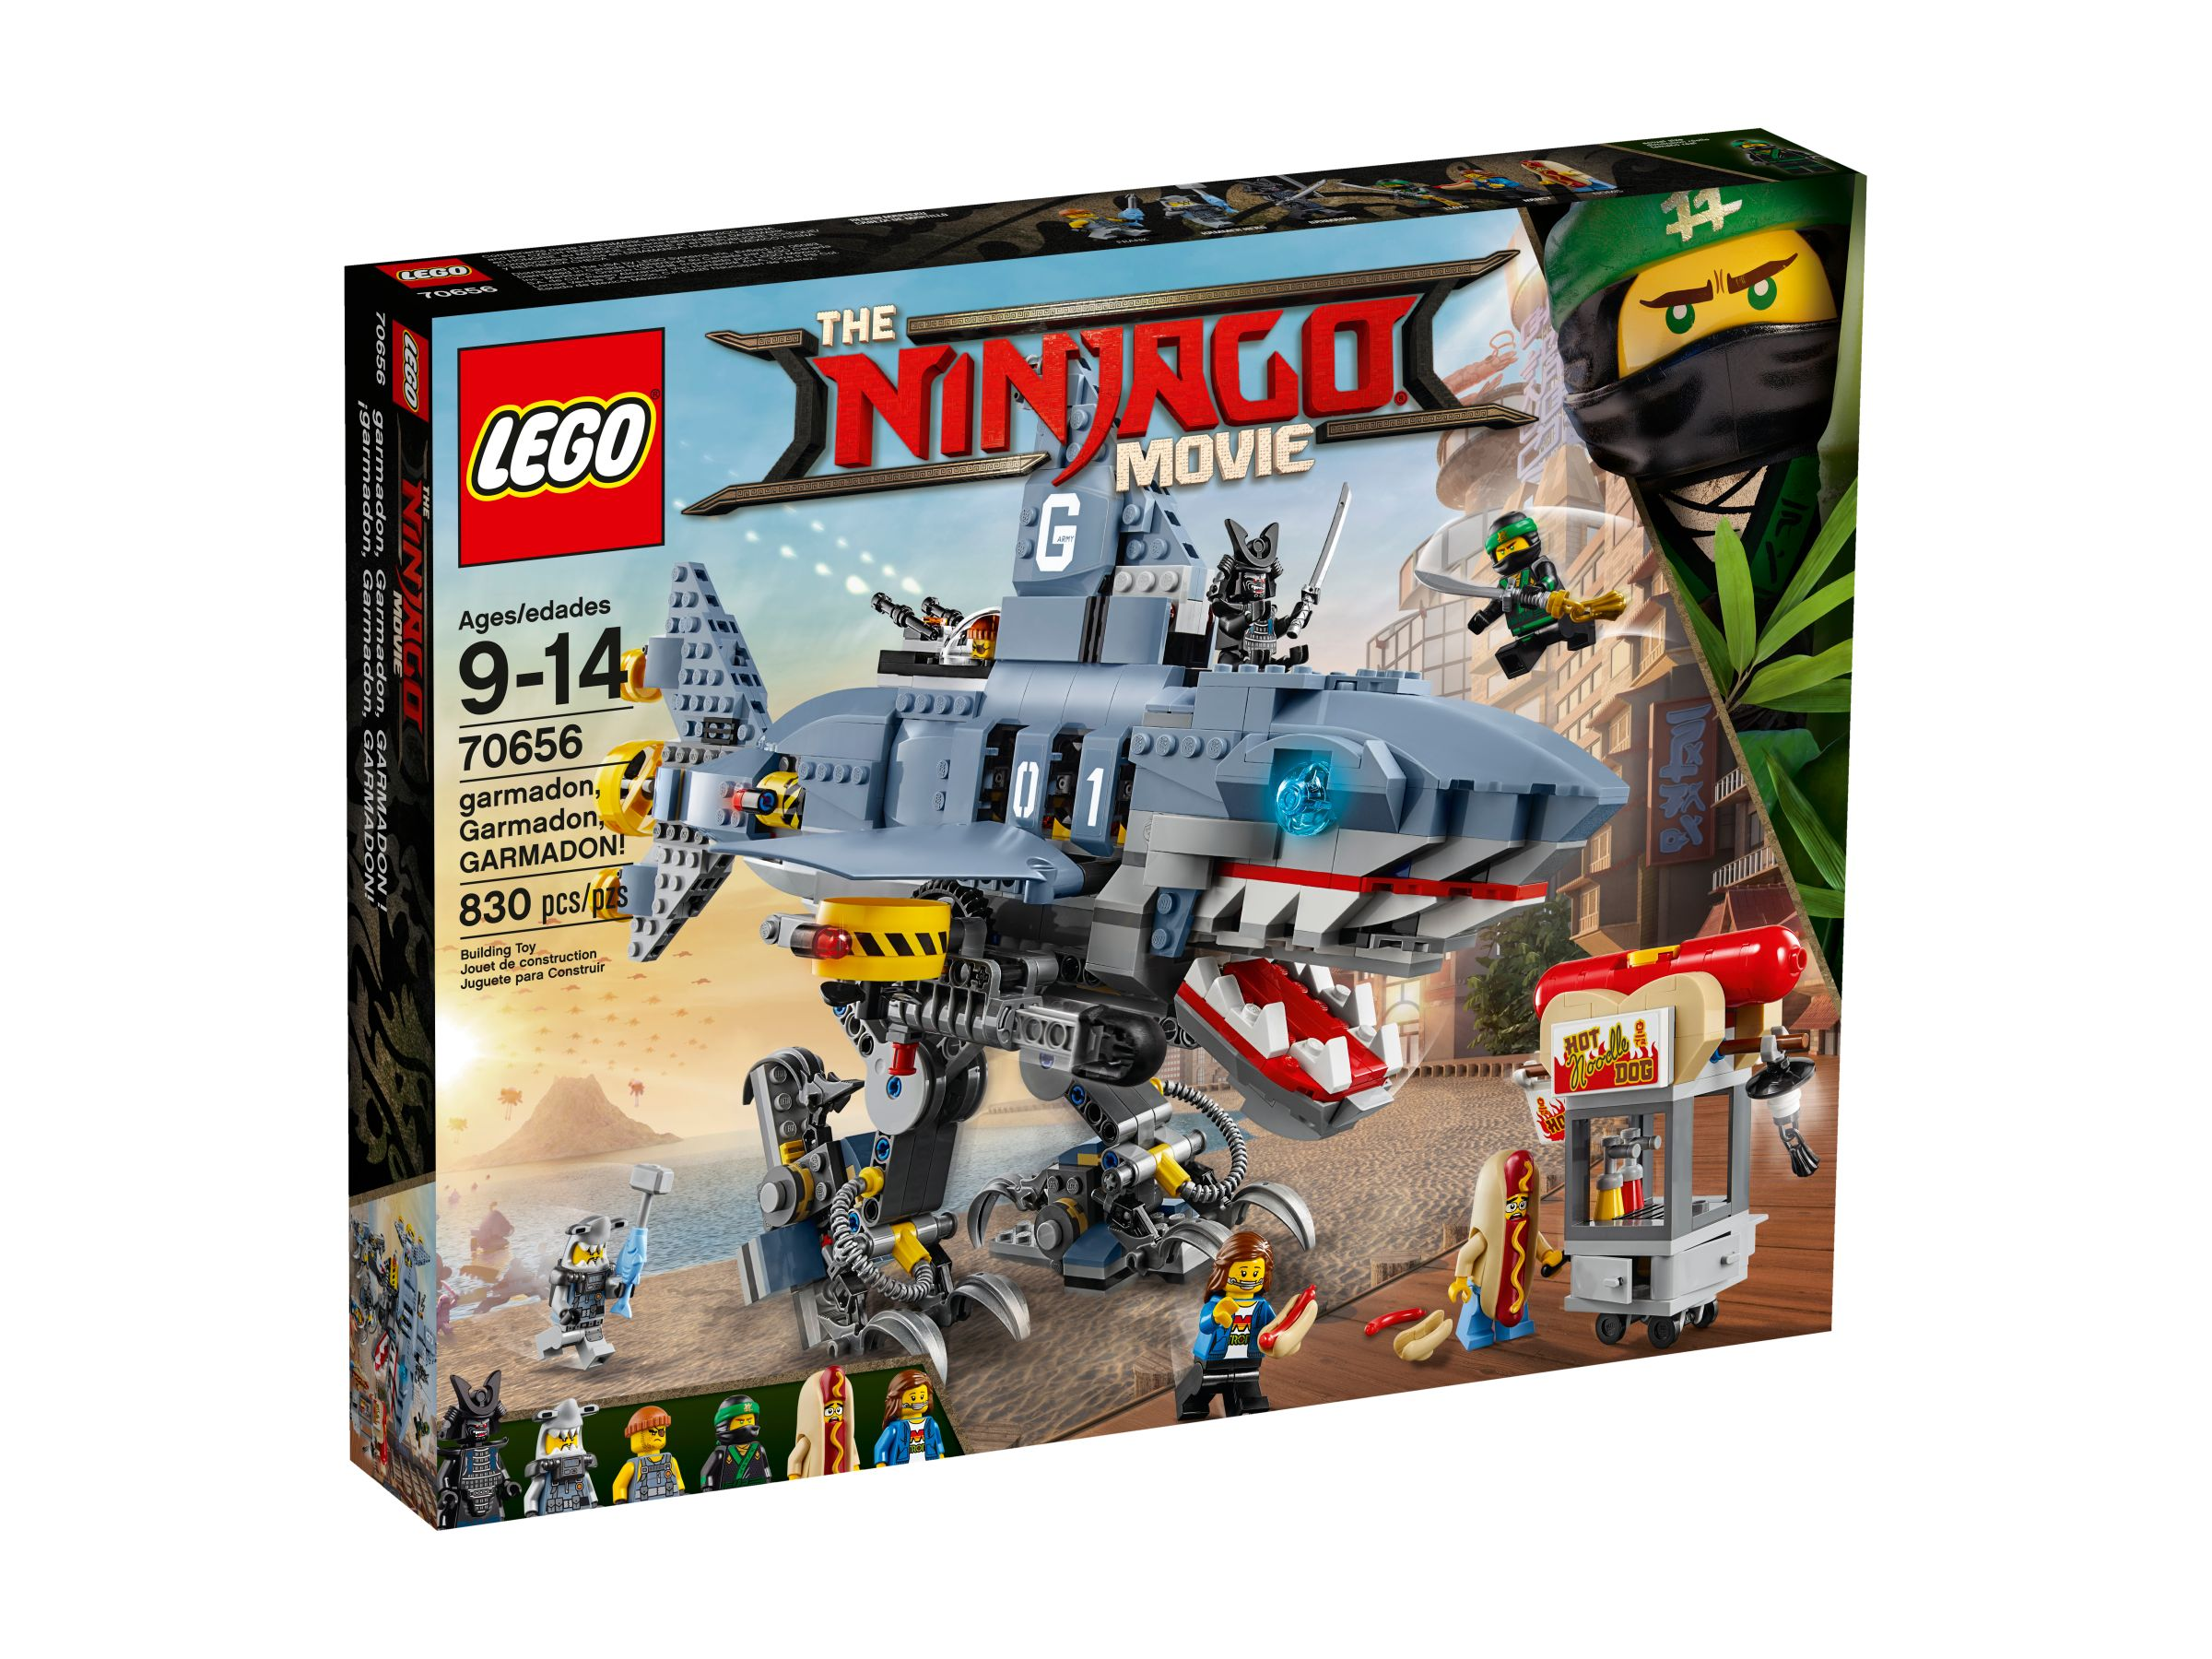 LEGO The LEGO Ninjago Movie 70656 Garmadon, Garmadon, GARMADON! LEGO_70656_alt1.jpg